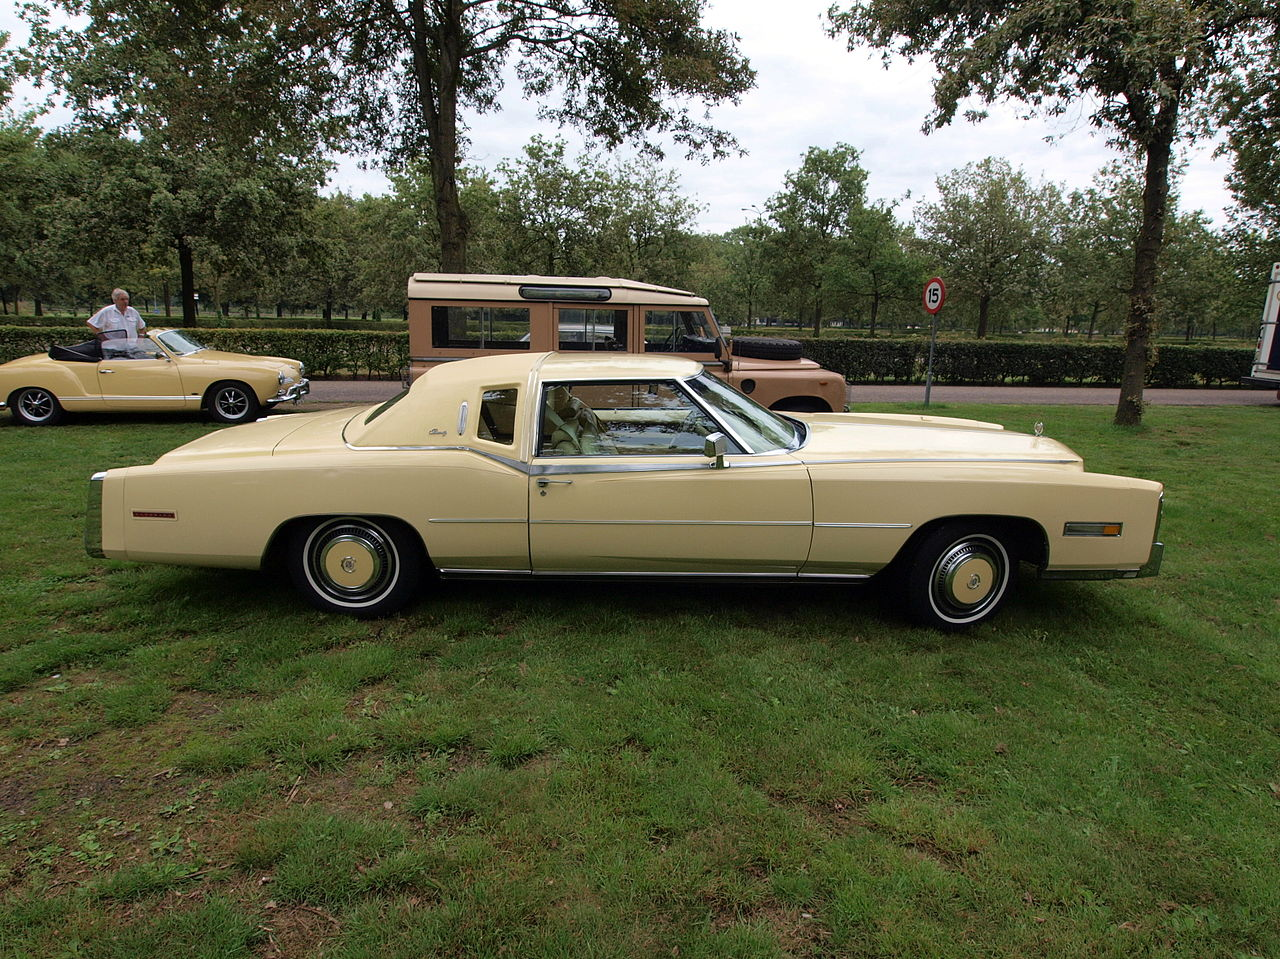 File Cadillac Eldorado 1978 At The Autotron Licence Registration 43 Lnf 9 P2 Jpg Wikimedia